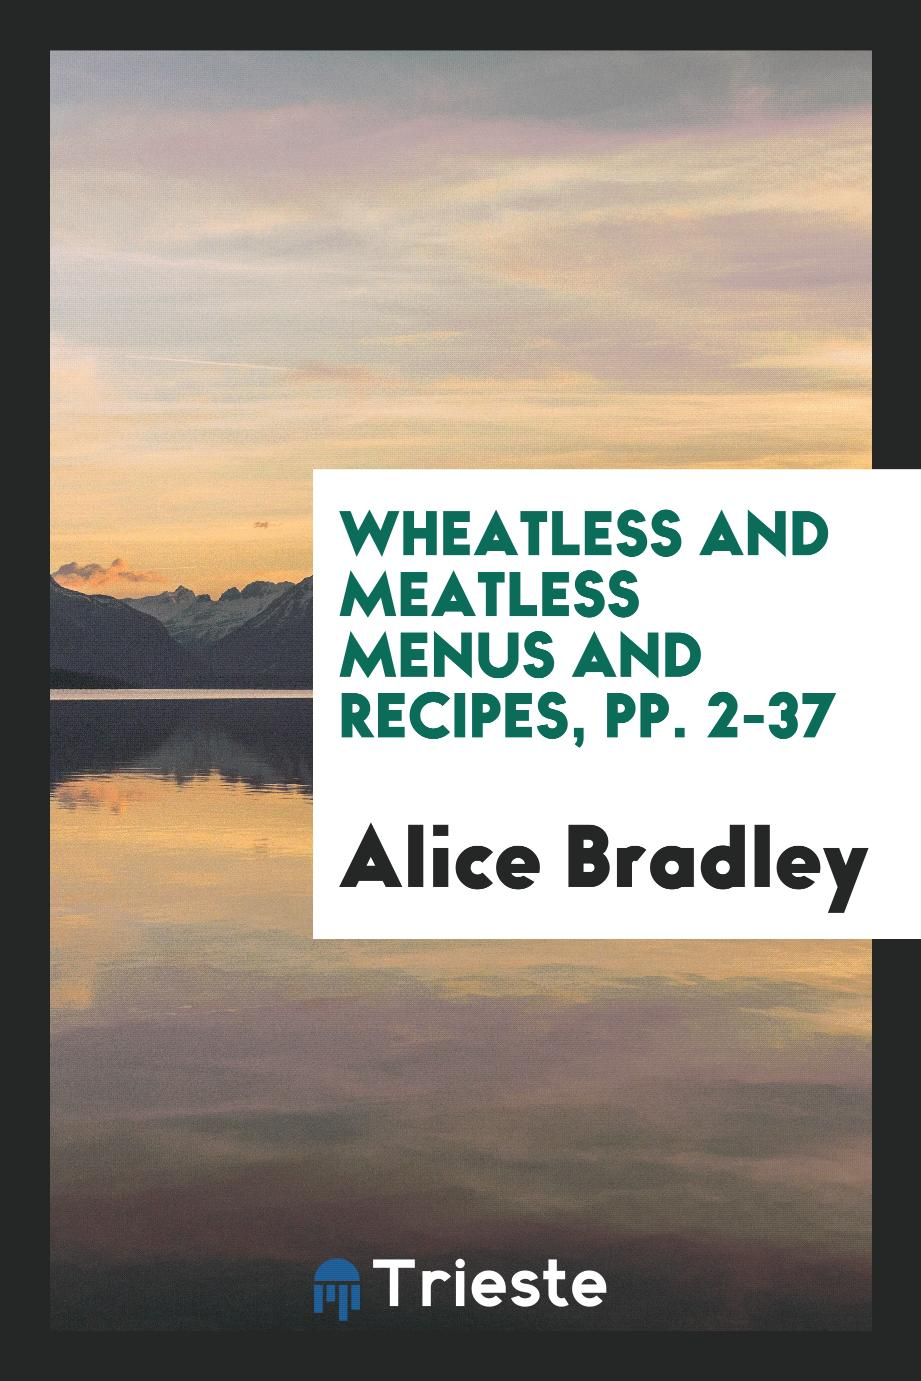 Wheatless and Meatless Menus and Recipes, pp. 2-37